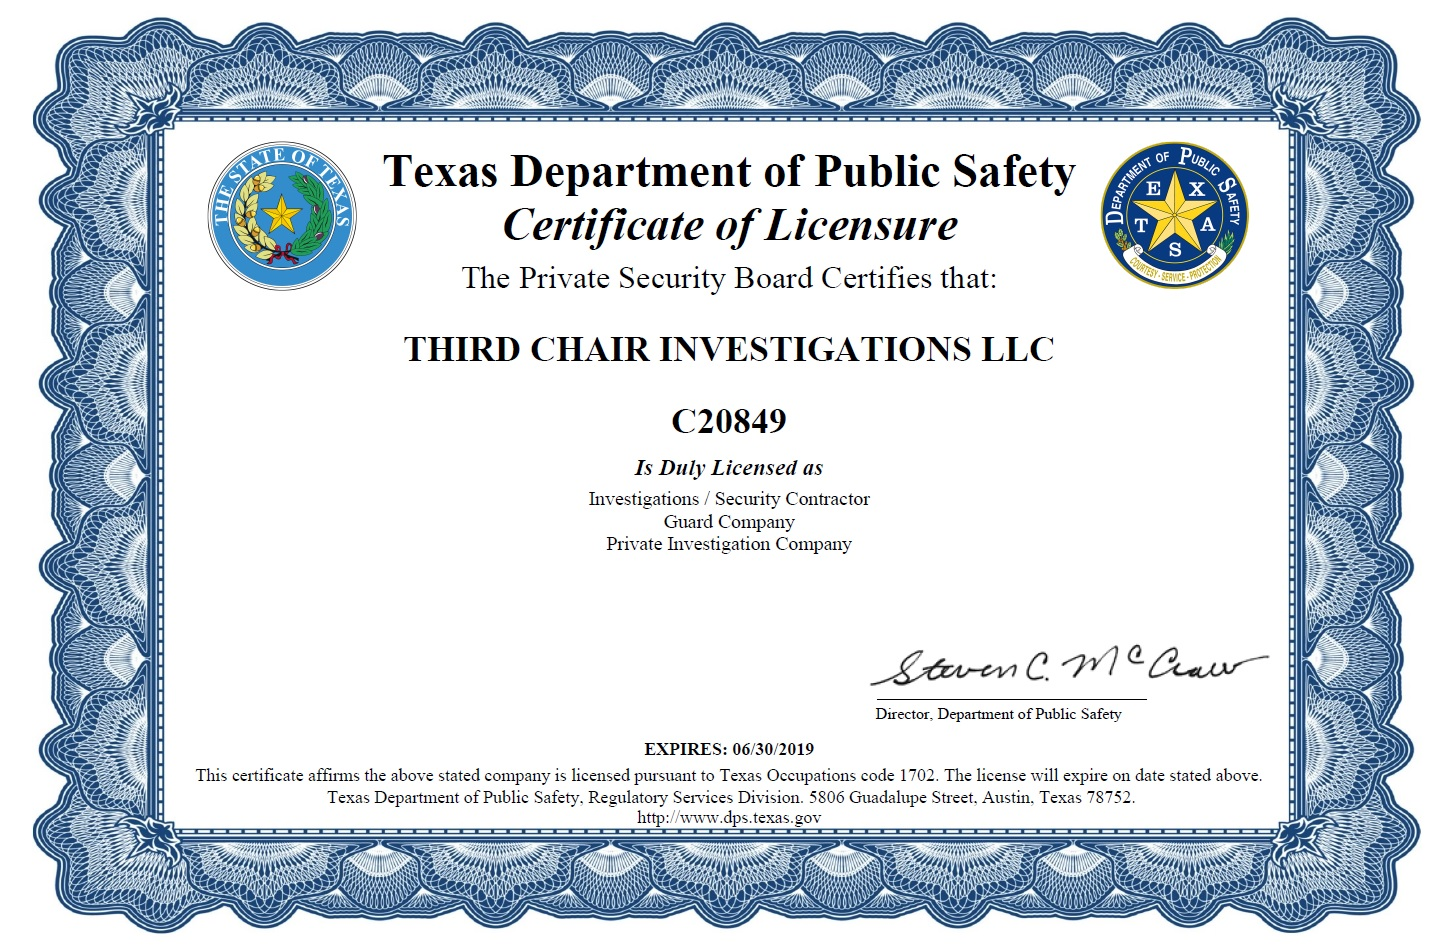 Third Chair Investigations LLC - License No C20849